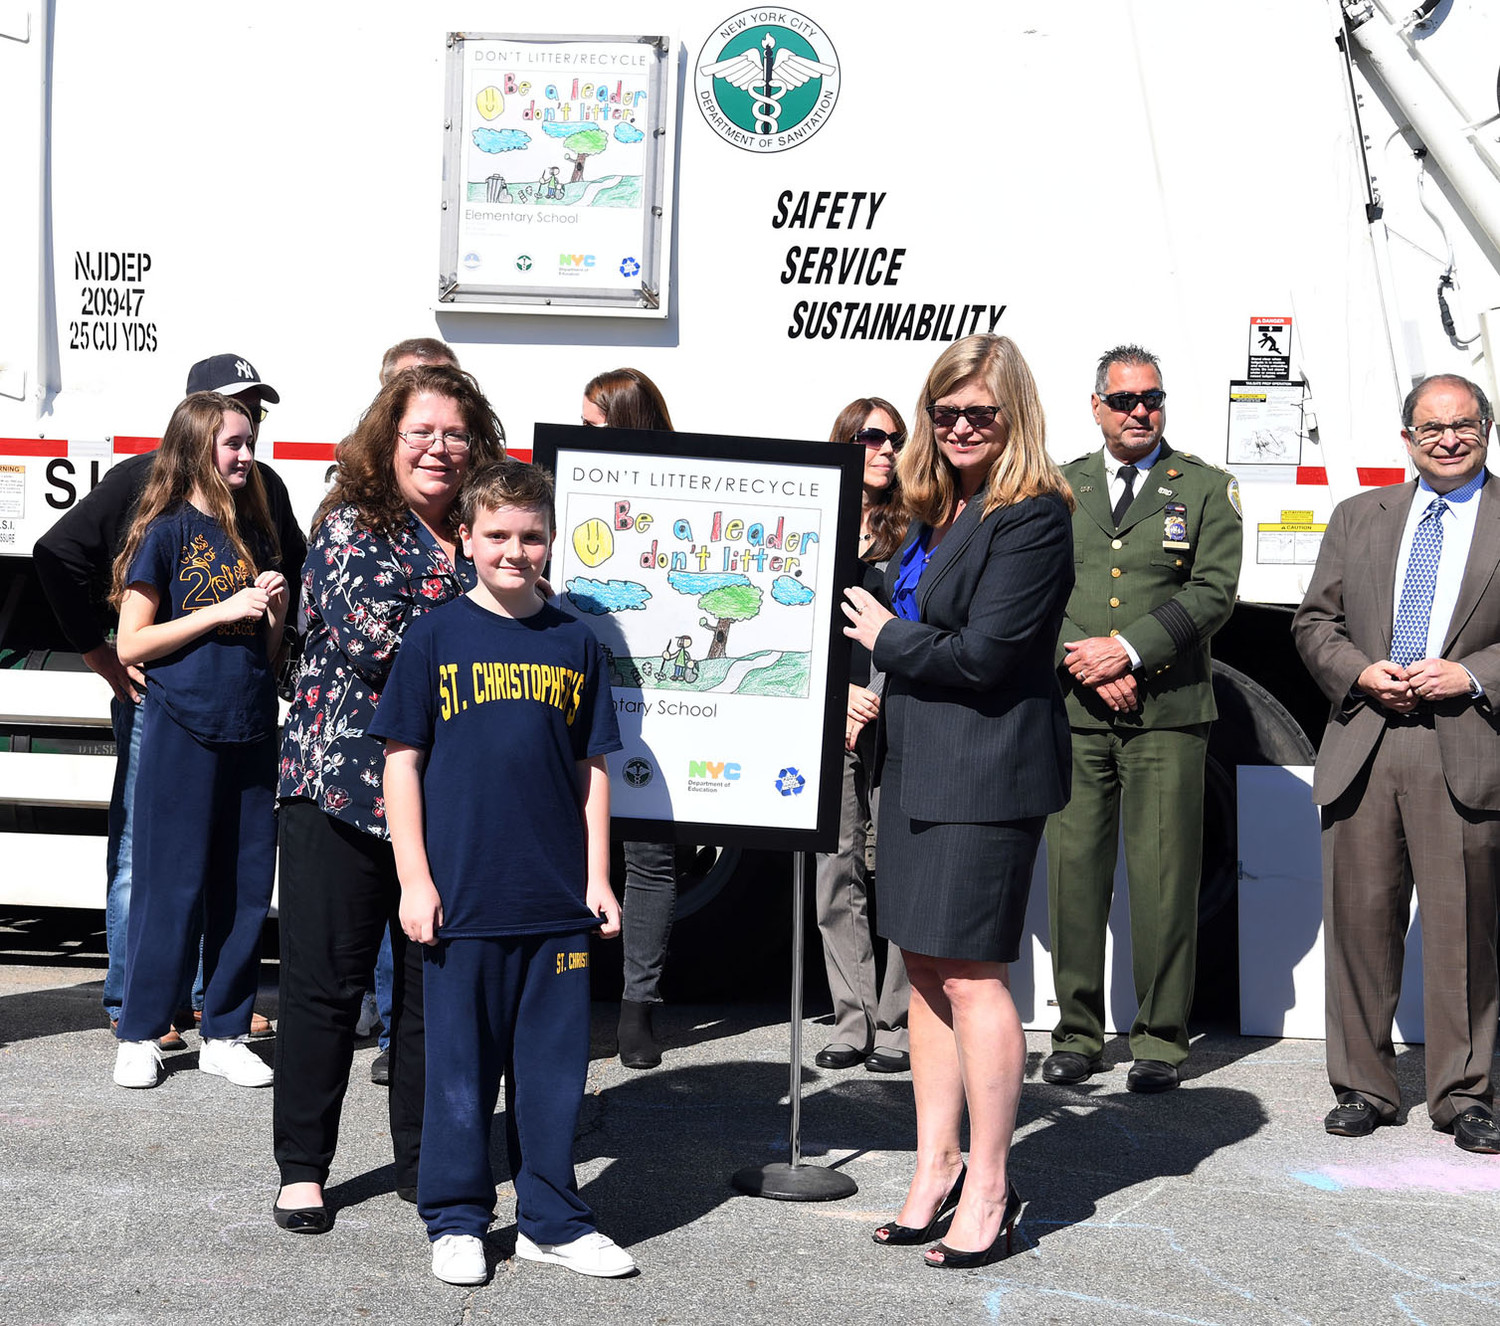 Ryan Schnur of St. Christopher's School on Staten Island is shown alongside his winning artwork held by his principal, Catherine Falabella, and DSNY Commissioner Kathryn Garcia. The work is showcased on a borough sanitation truck, behind them.